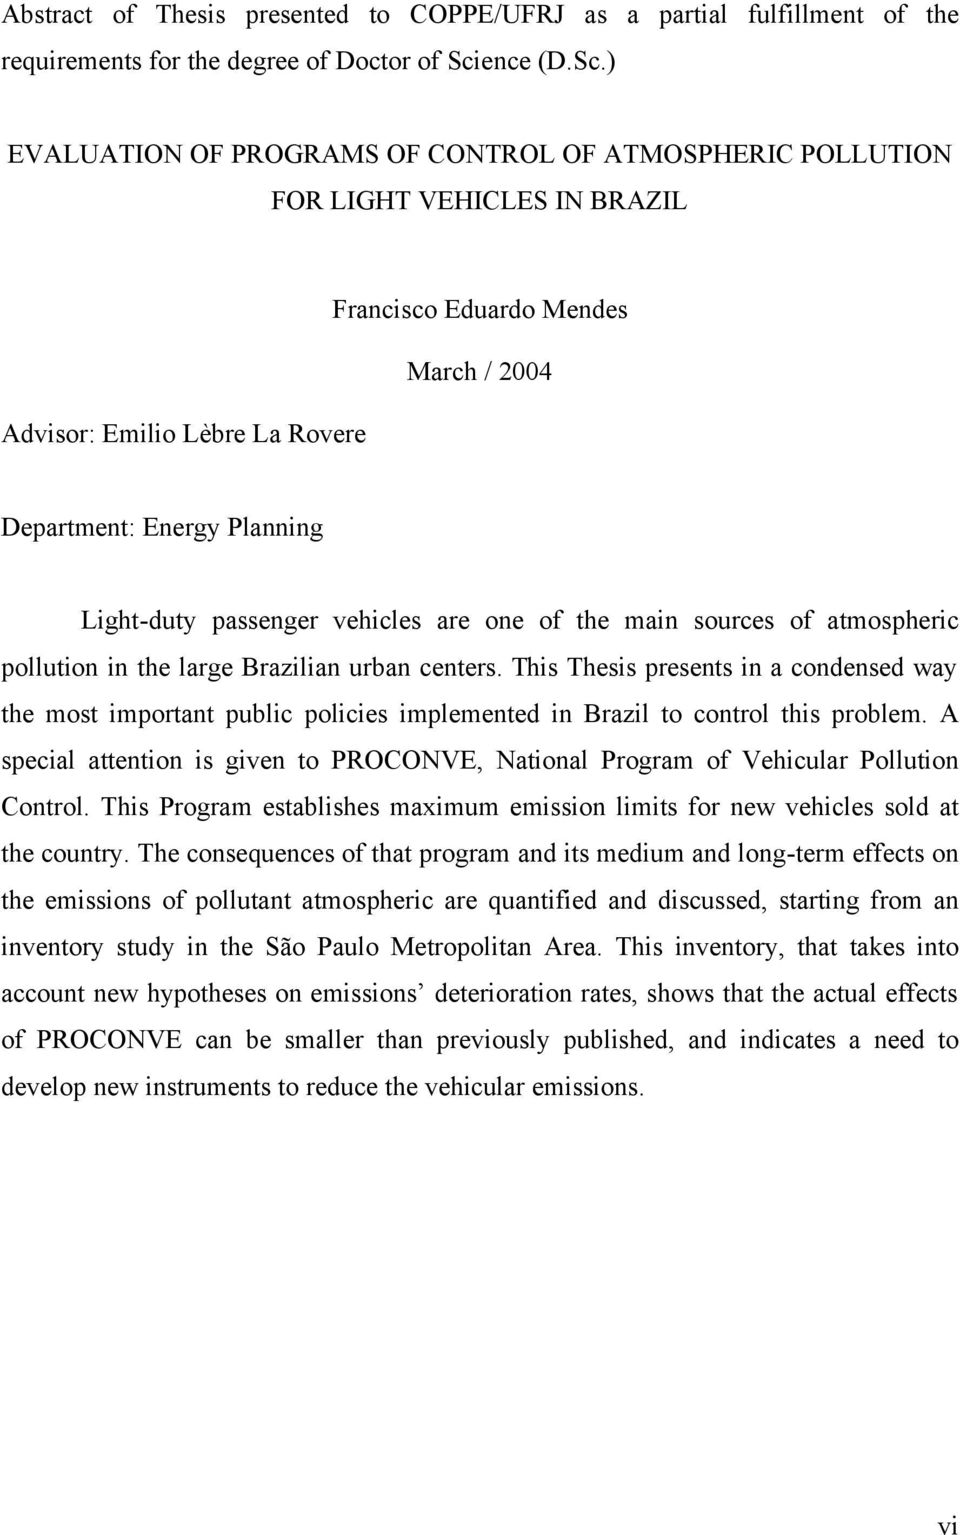 ) EVALUATION OF PROGRAMS OF CONTROL OF ATMOSPHERIC POLLUTION FOR LIGHT VEHICLES IN BRAZIL Advisor: Emilio Lèbre La Rovere Francisco Eduardo Mendes March / 2004 Department: Energy Planning Light-duty